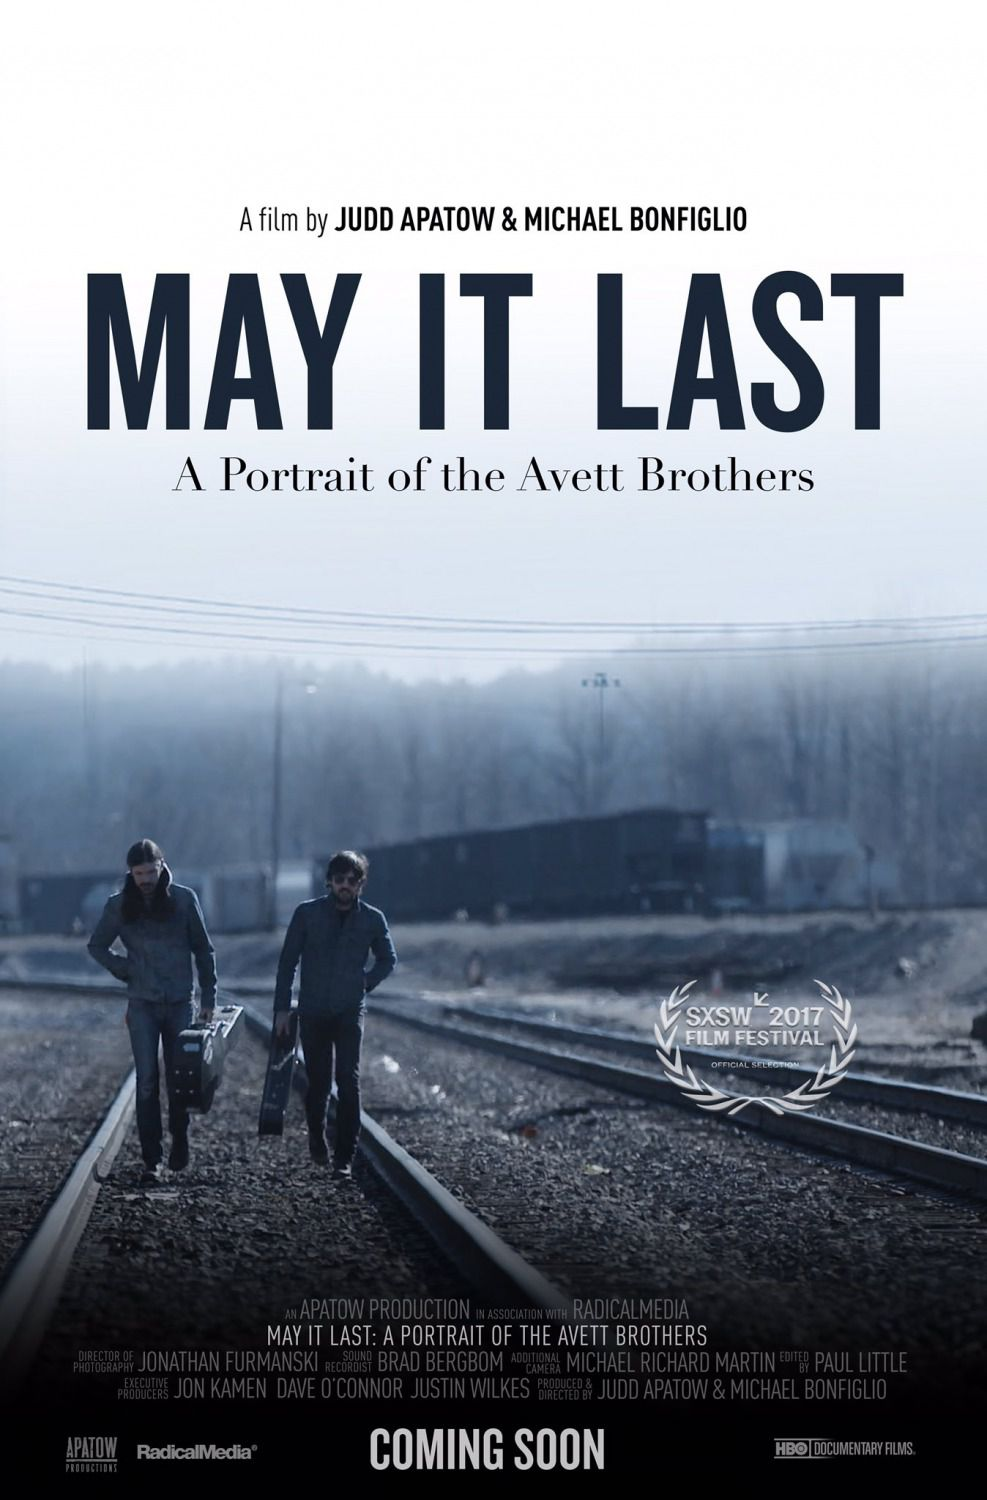 May it Last a portrait of the Avett Brothers - film poster 2018 slice of life